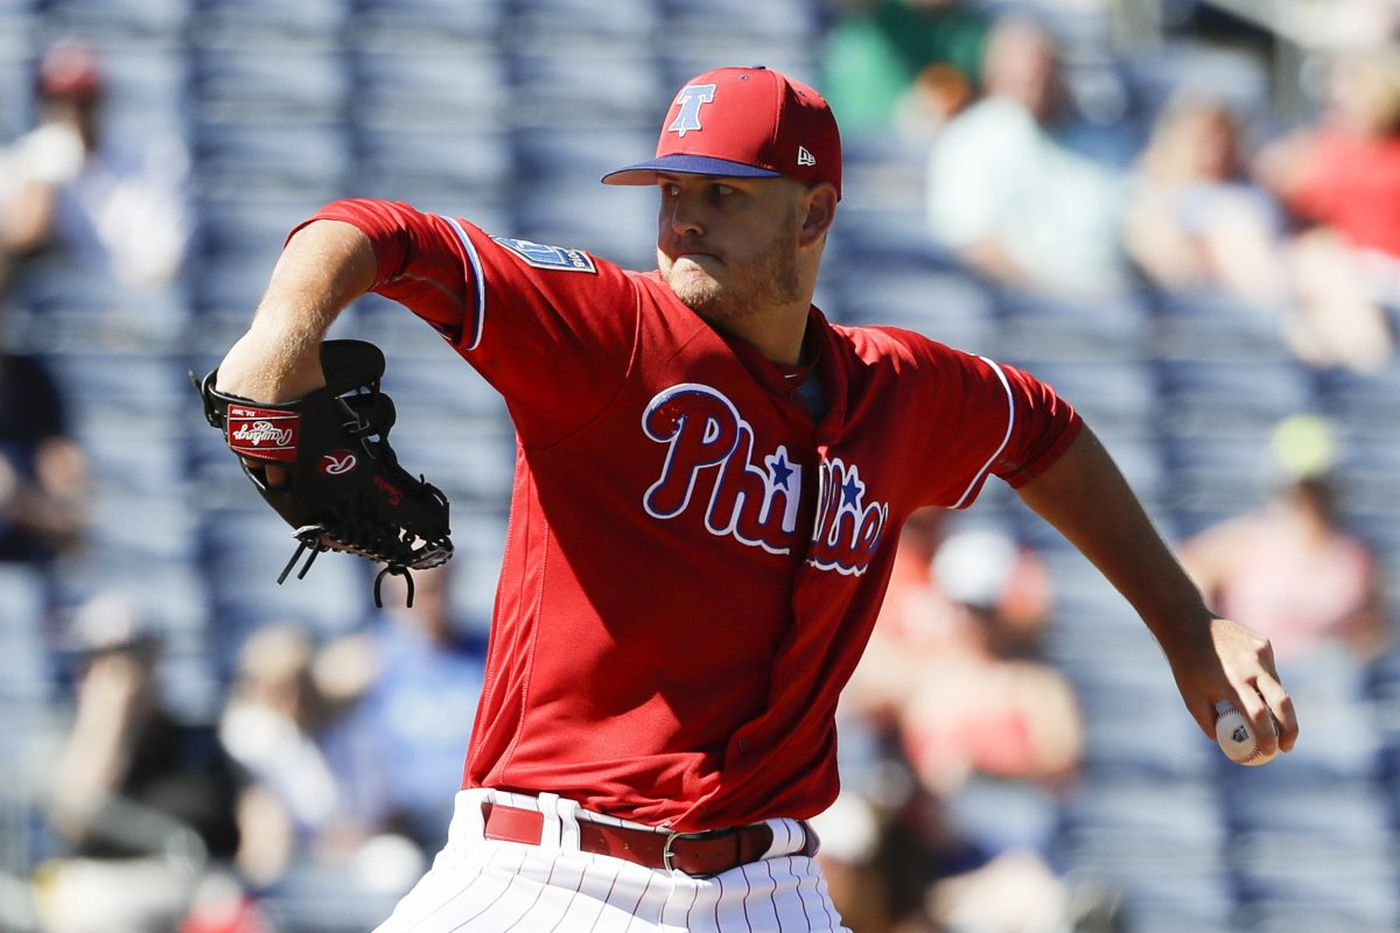 Phillies Minor League report: Cole Irvin fans 10 in AAA debut